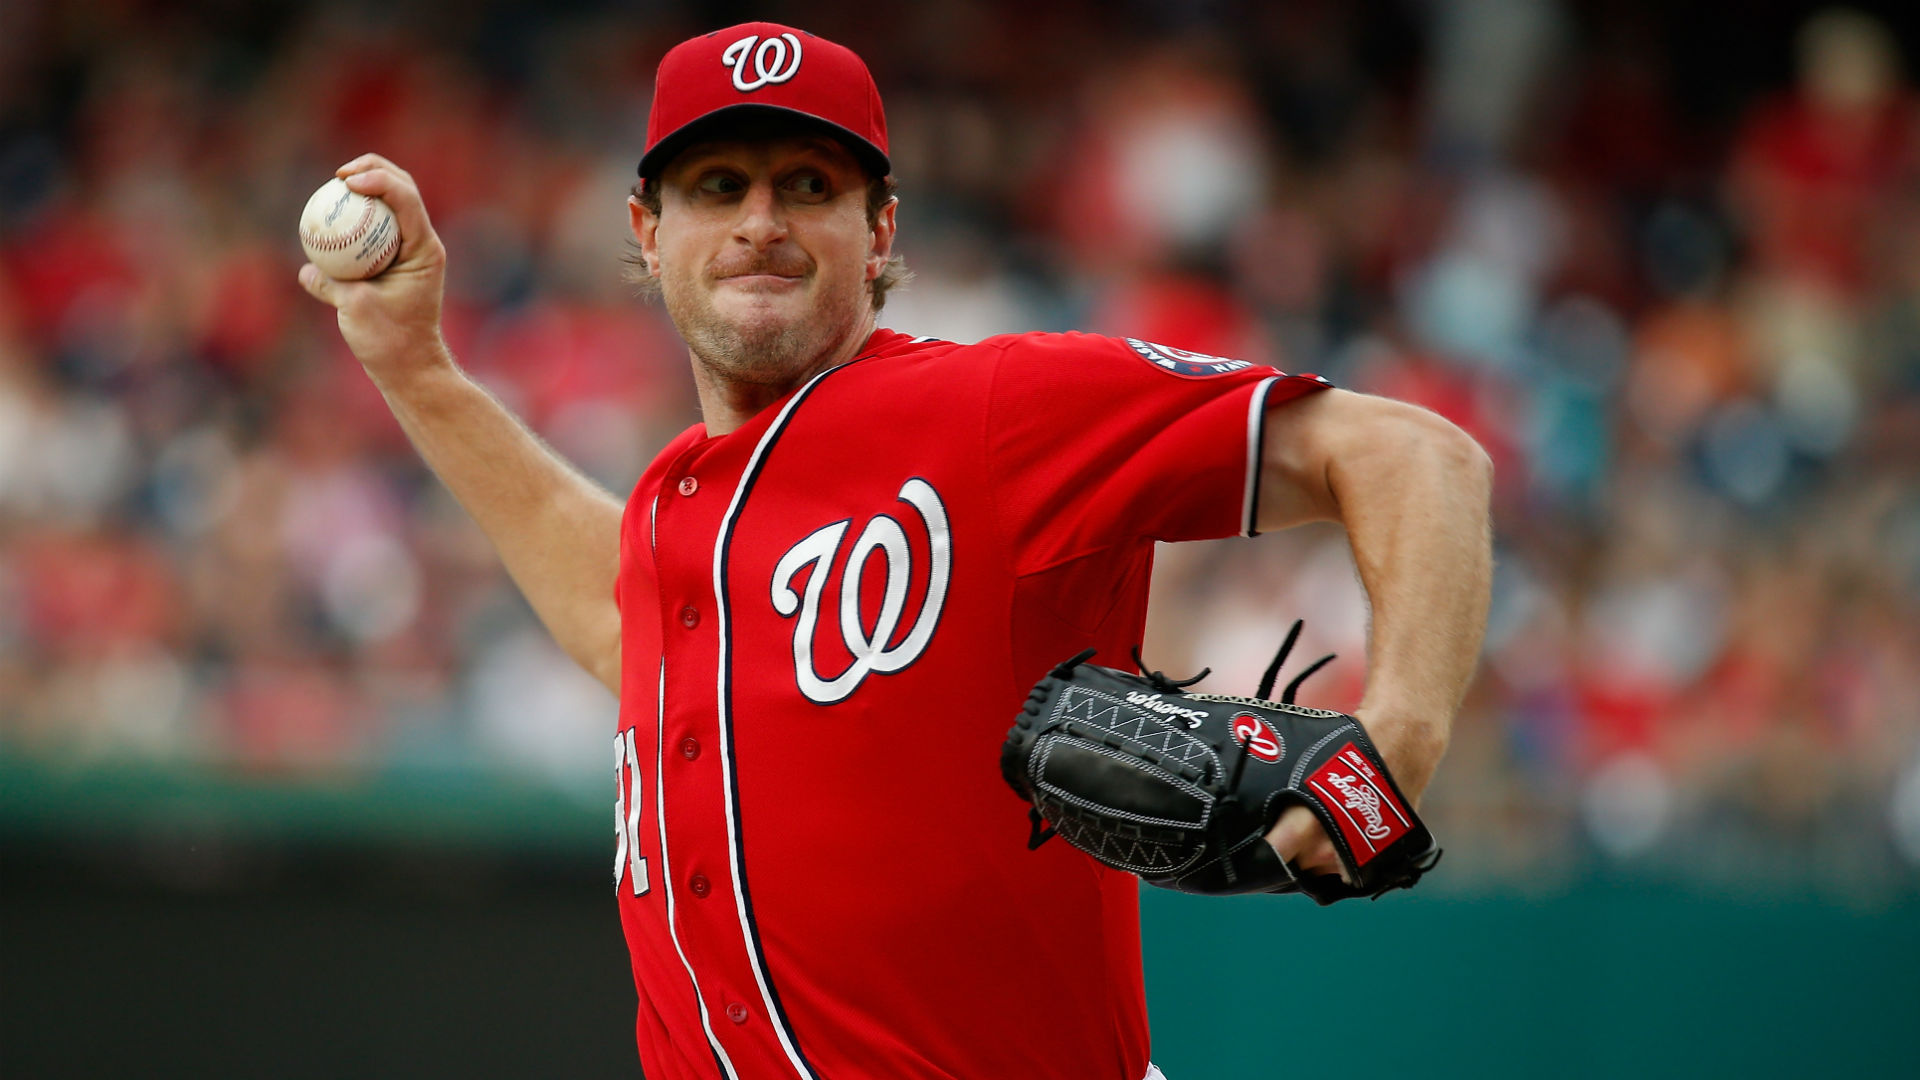 Max-Scherzer-062515-GETTY-FTR